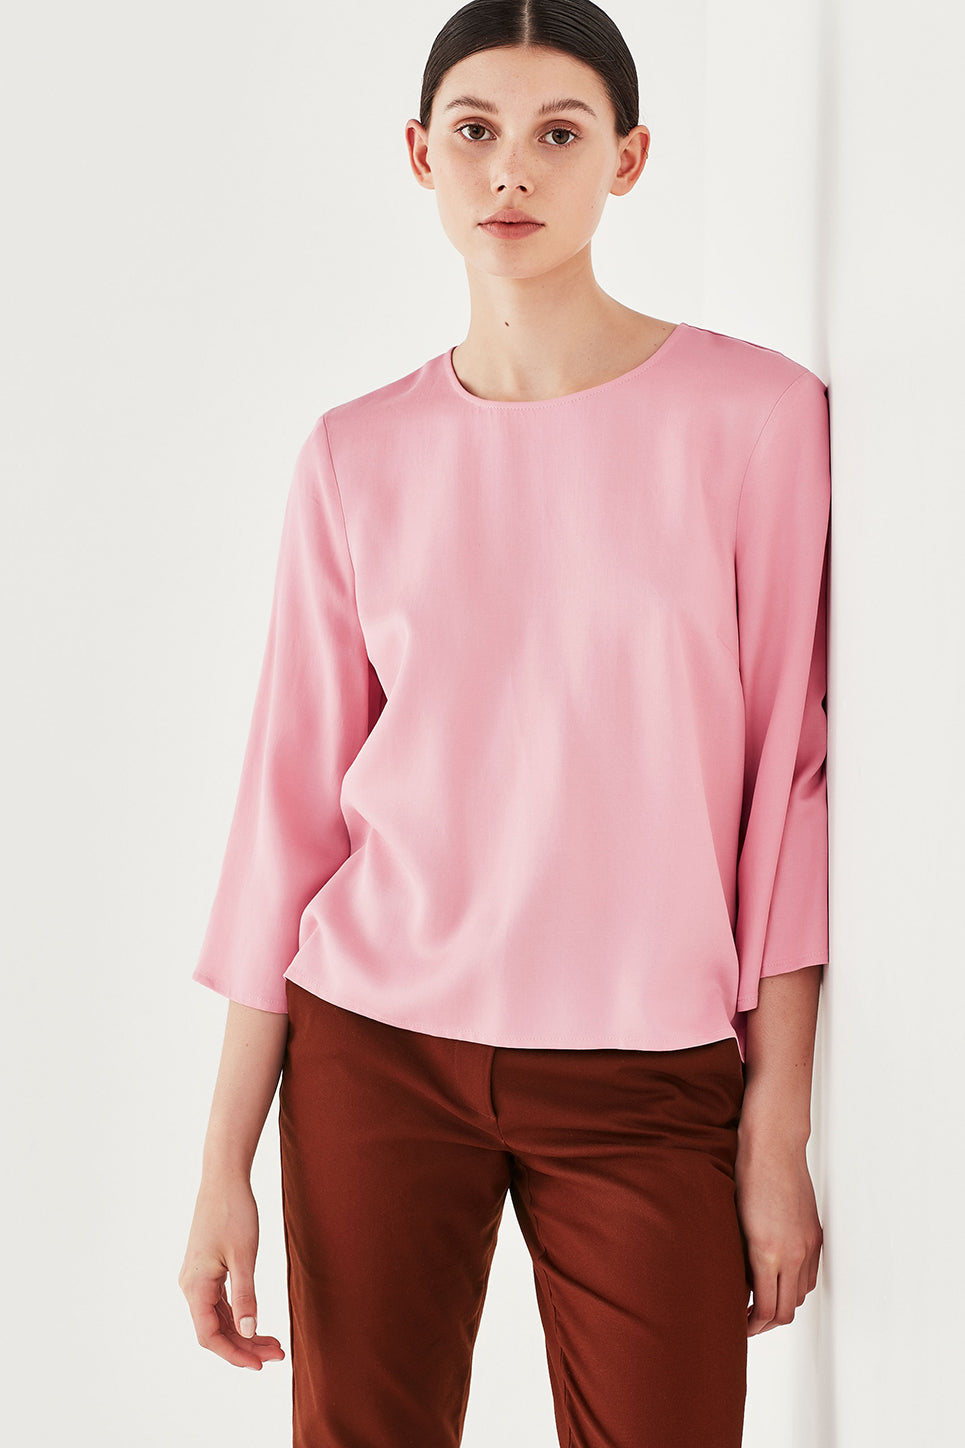 The Roxy Top in Peony